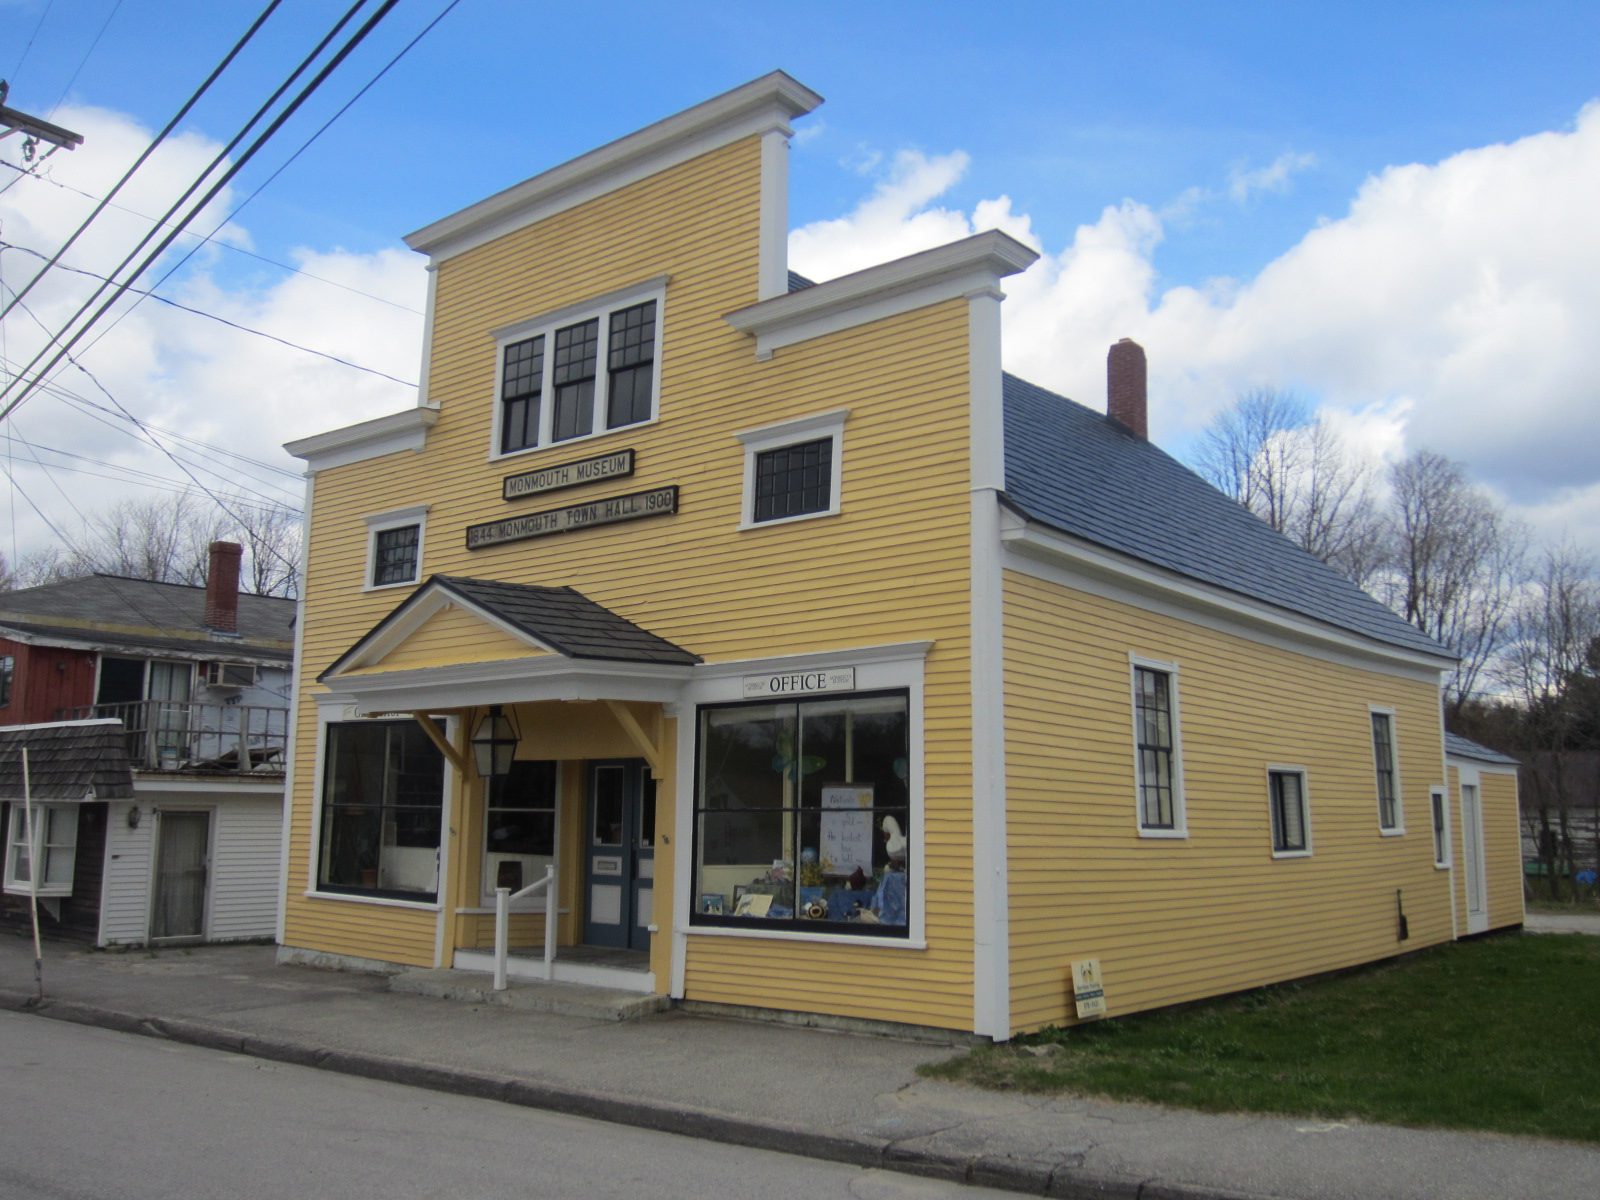 Monmouth Museum, Monmouth, Maine